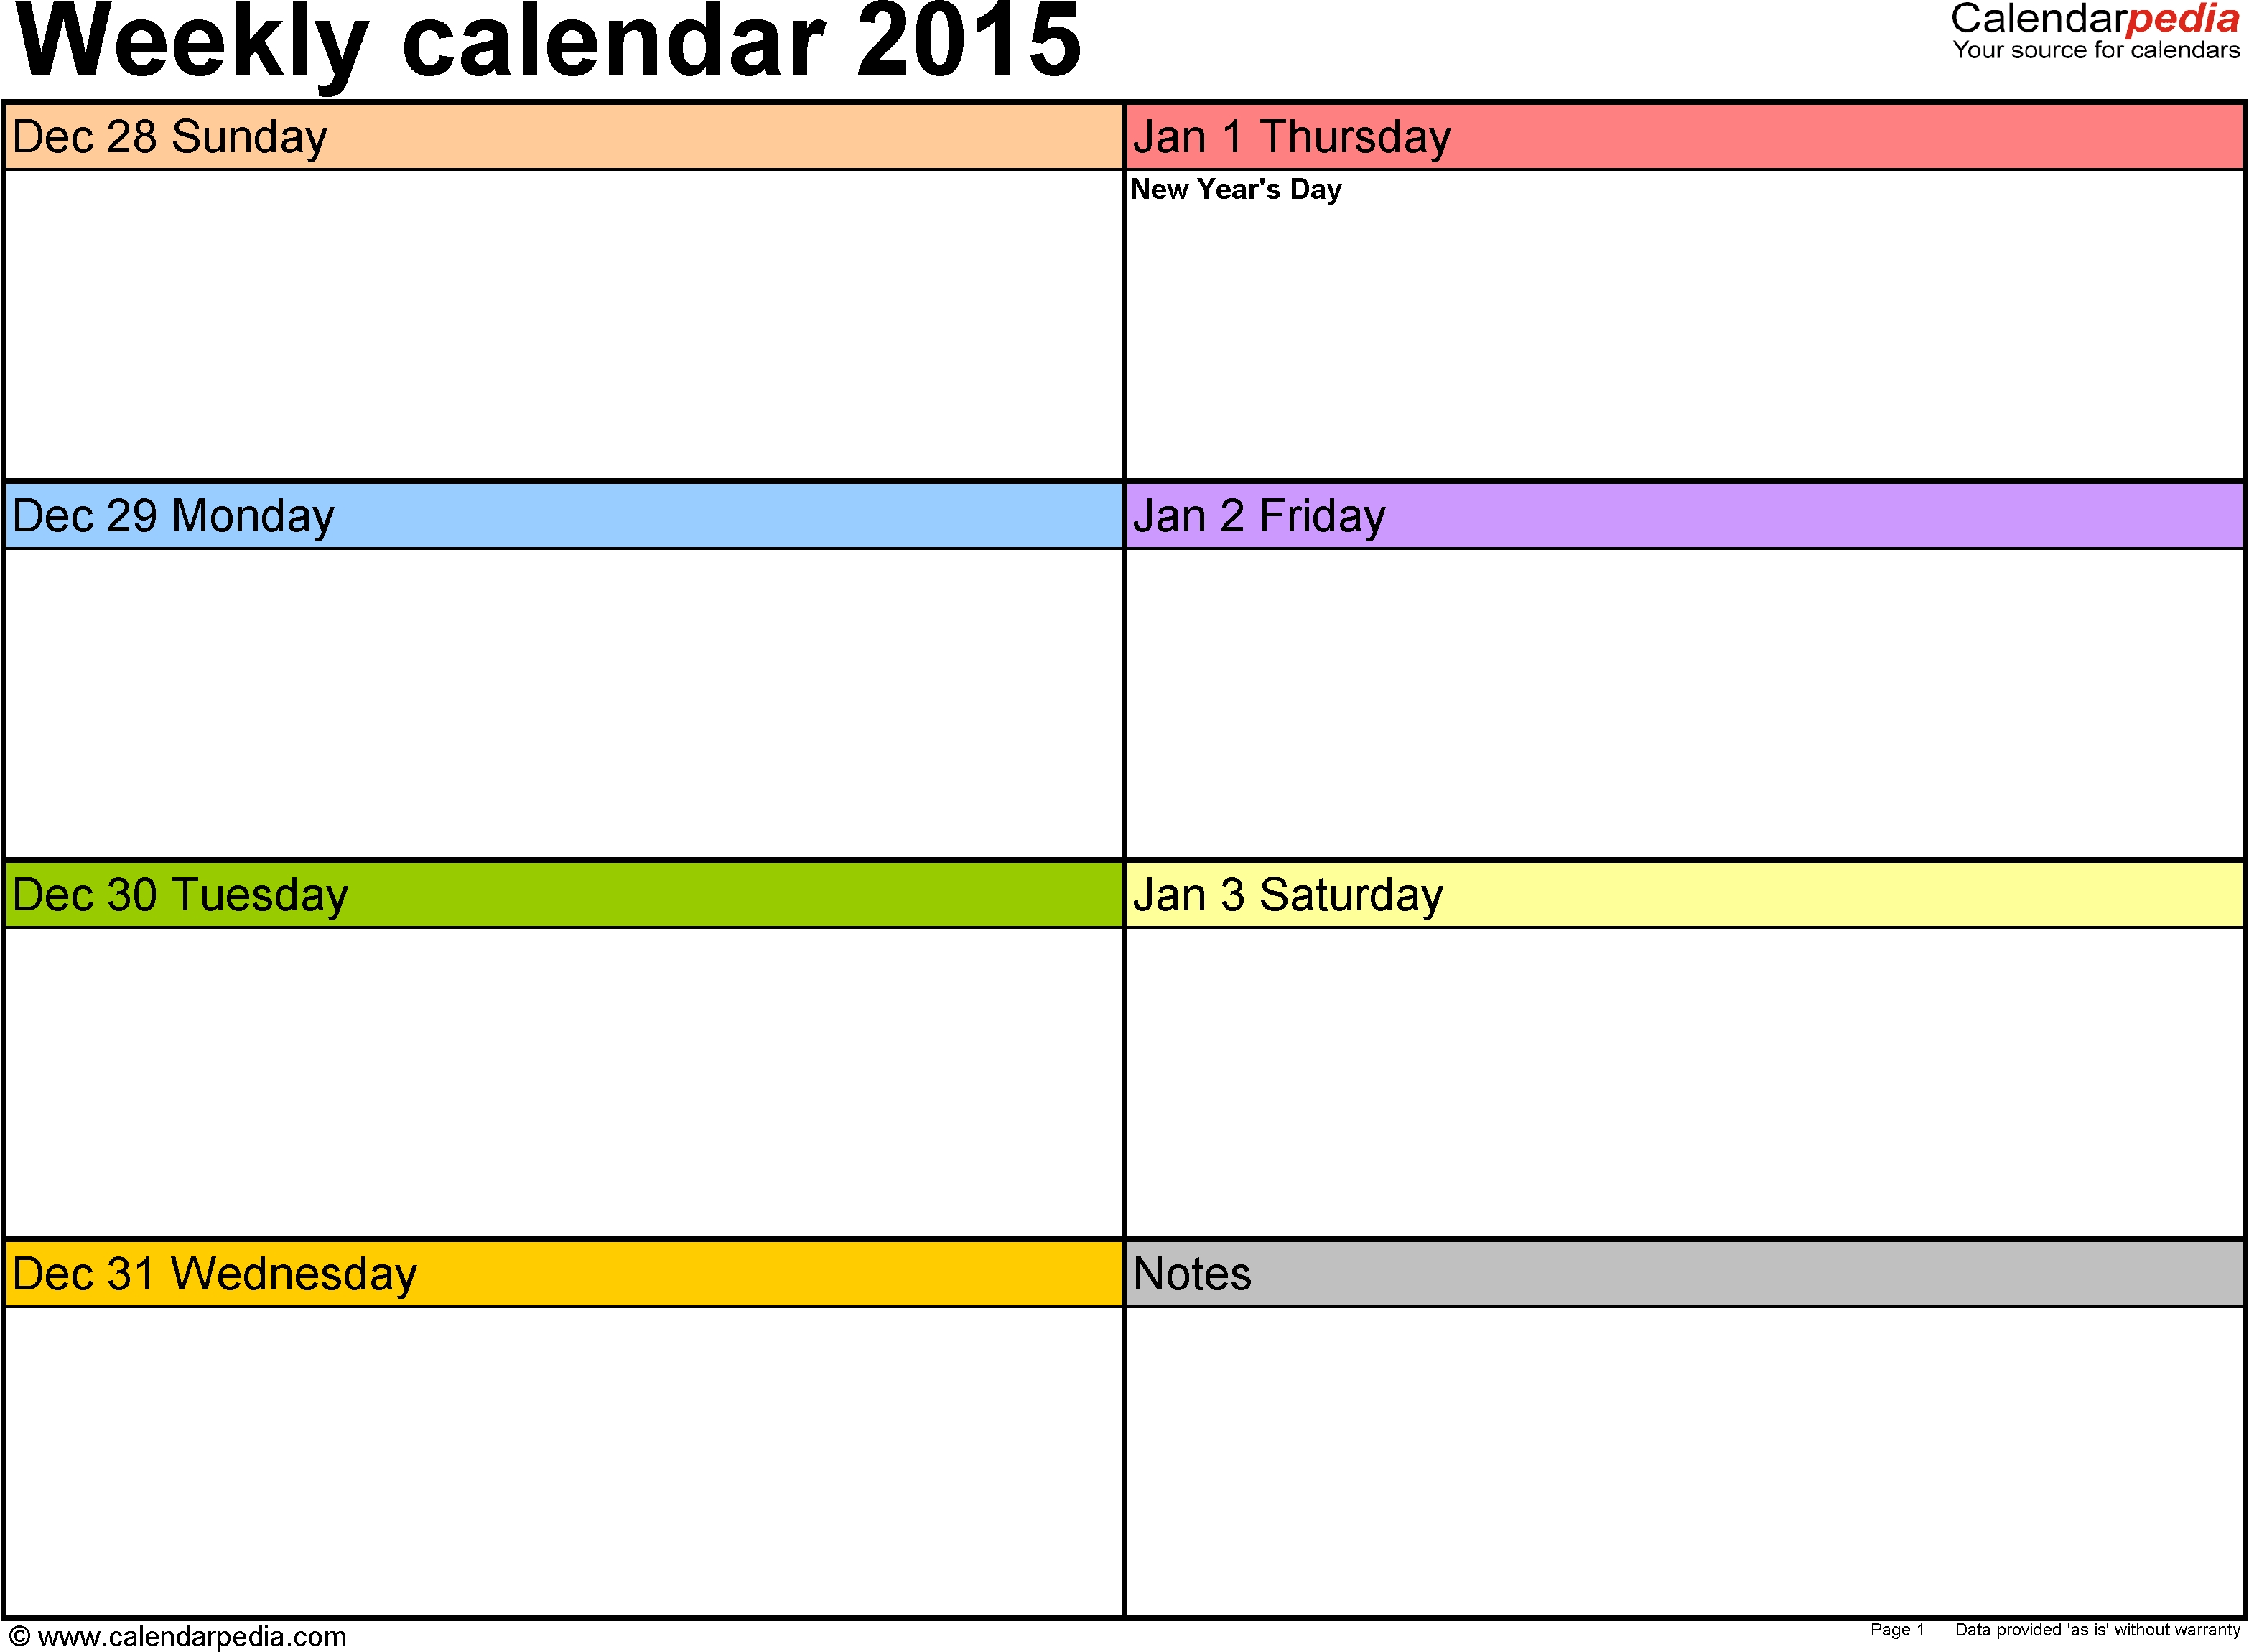 Weekly Calendar 2015 For Pdf - 12 Free Printable Templates  Printable Appointment Calendars Monday Through Friday